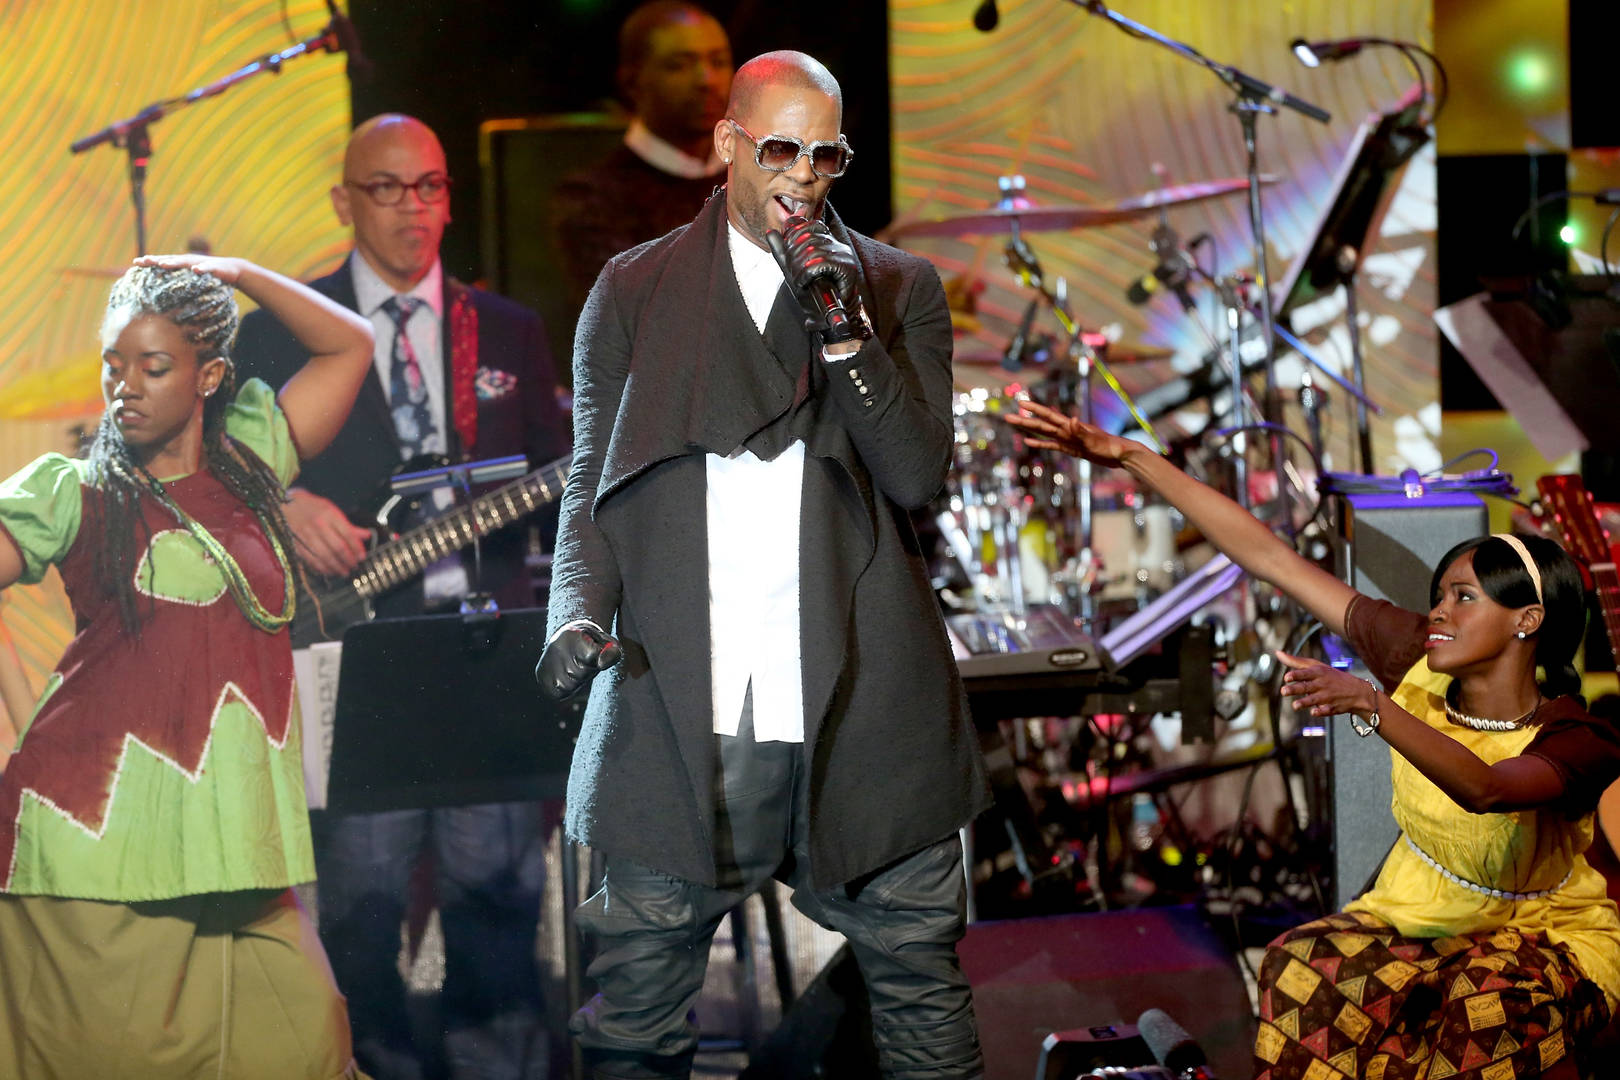 R. Kelly's streams increase after docu-series alleges abuse class=